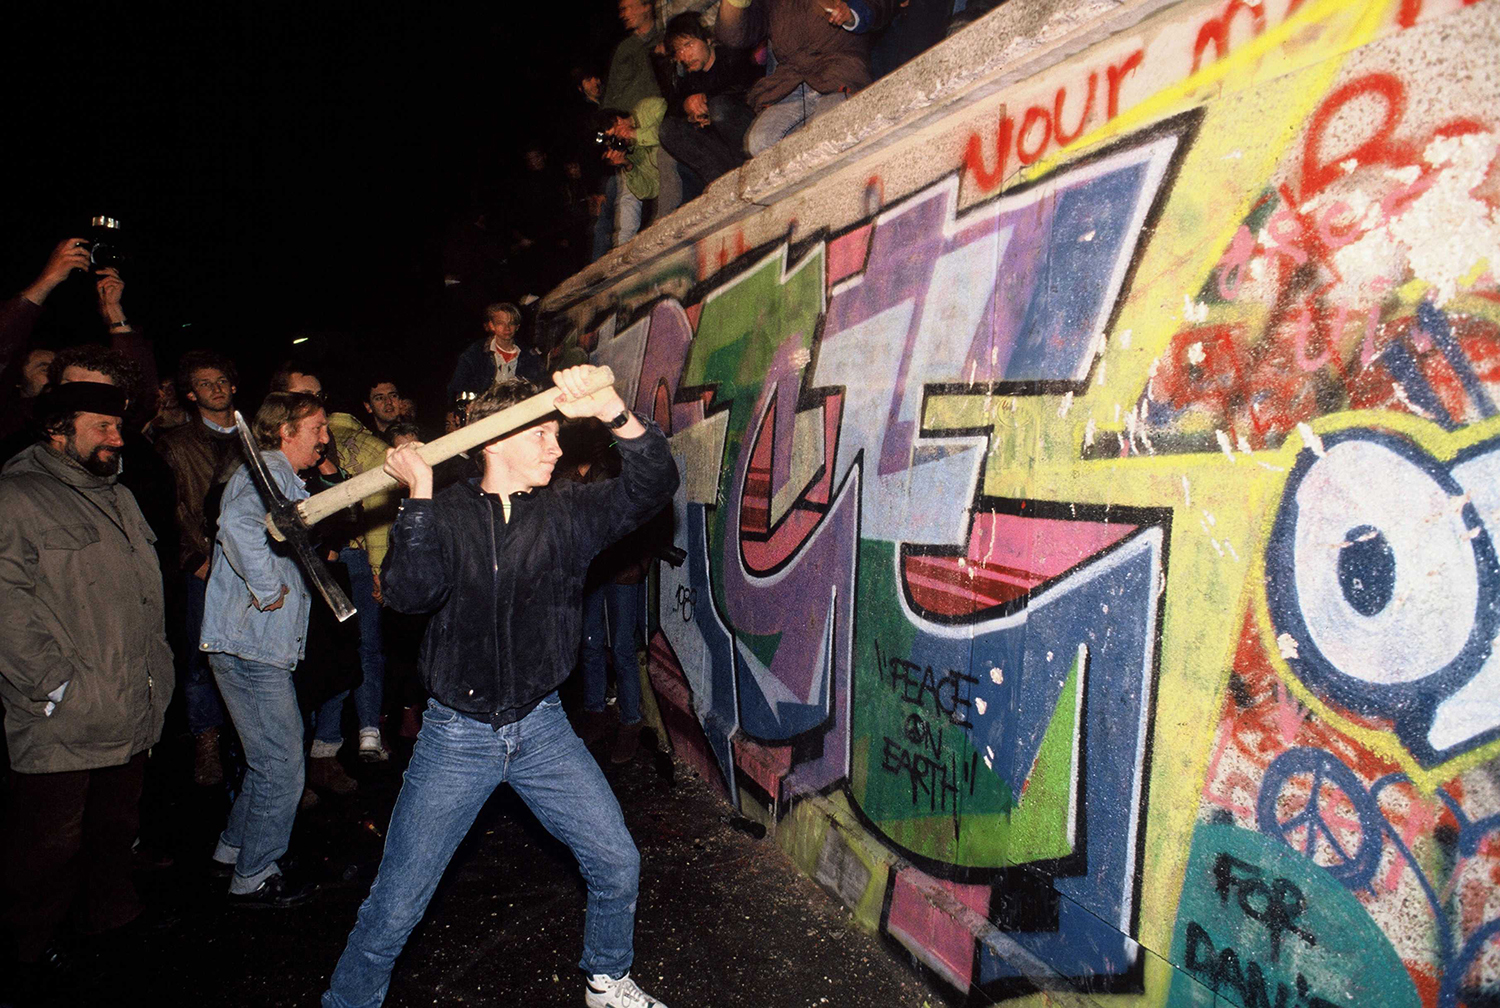 A man attacks the Berlin Wall with a pickax on the night of Nov. 9, 1989, as news spread that the East German government would start granting exit visas to anyone who wanted to go to the West. Robert Wallis/Corbis via Getty Images